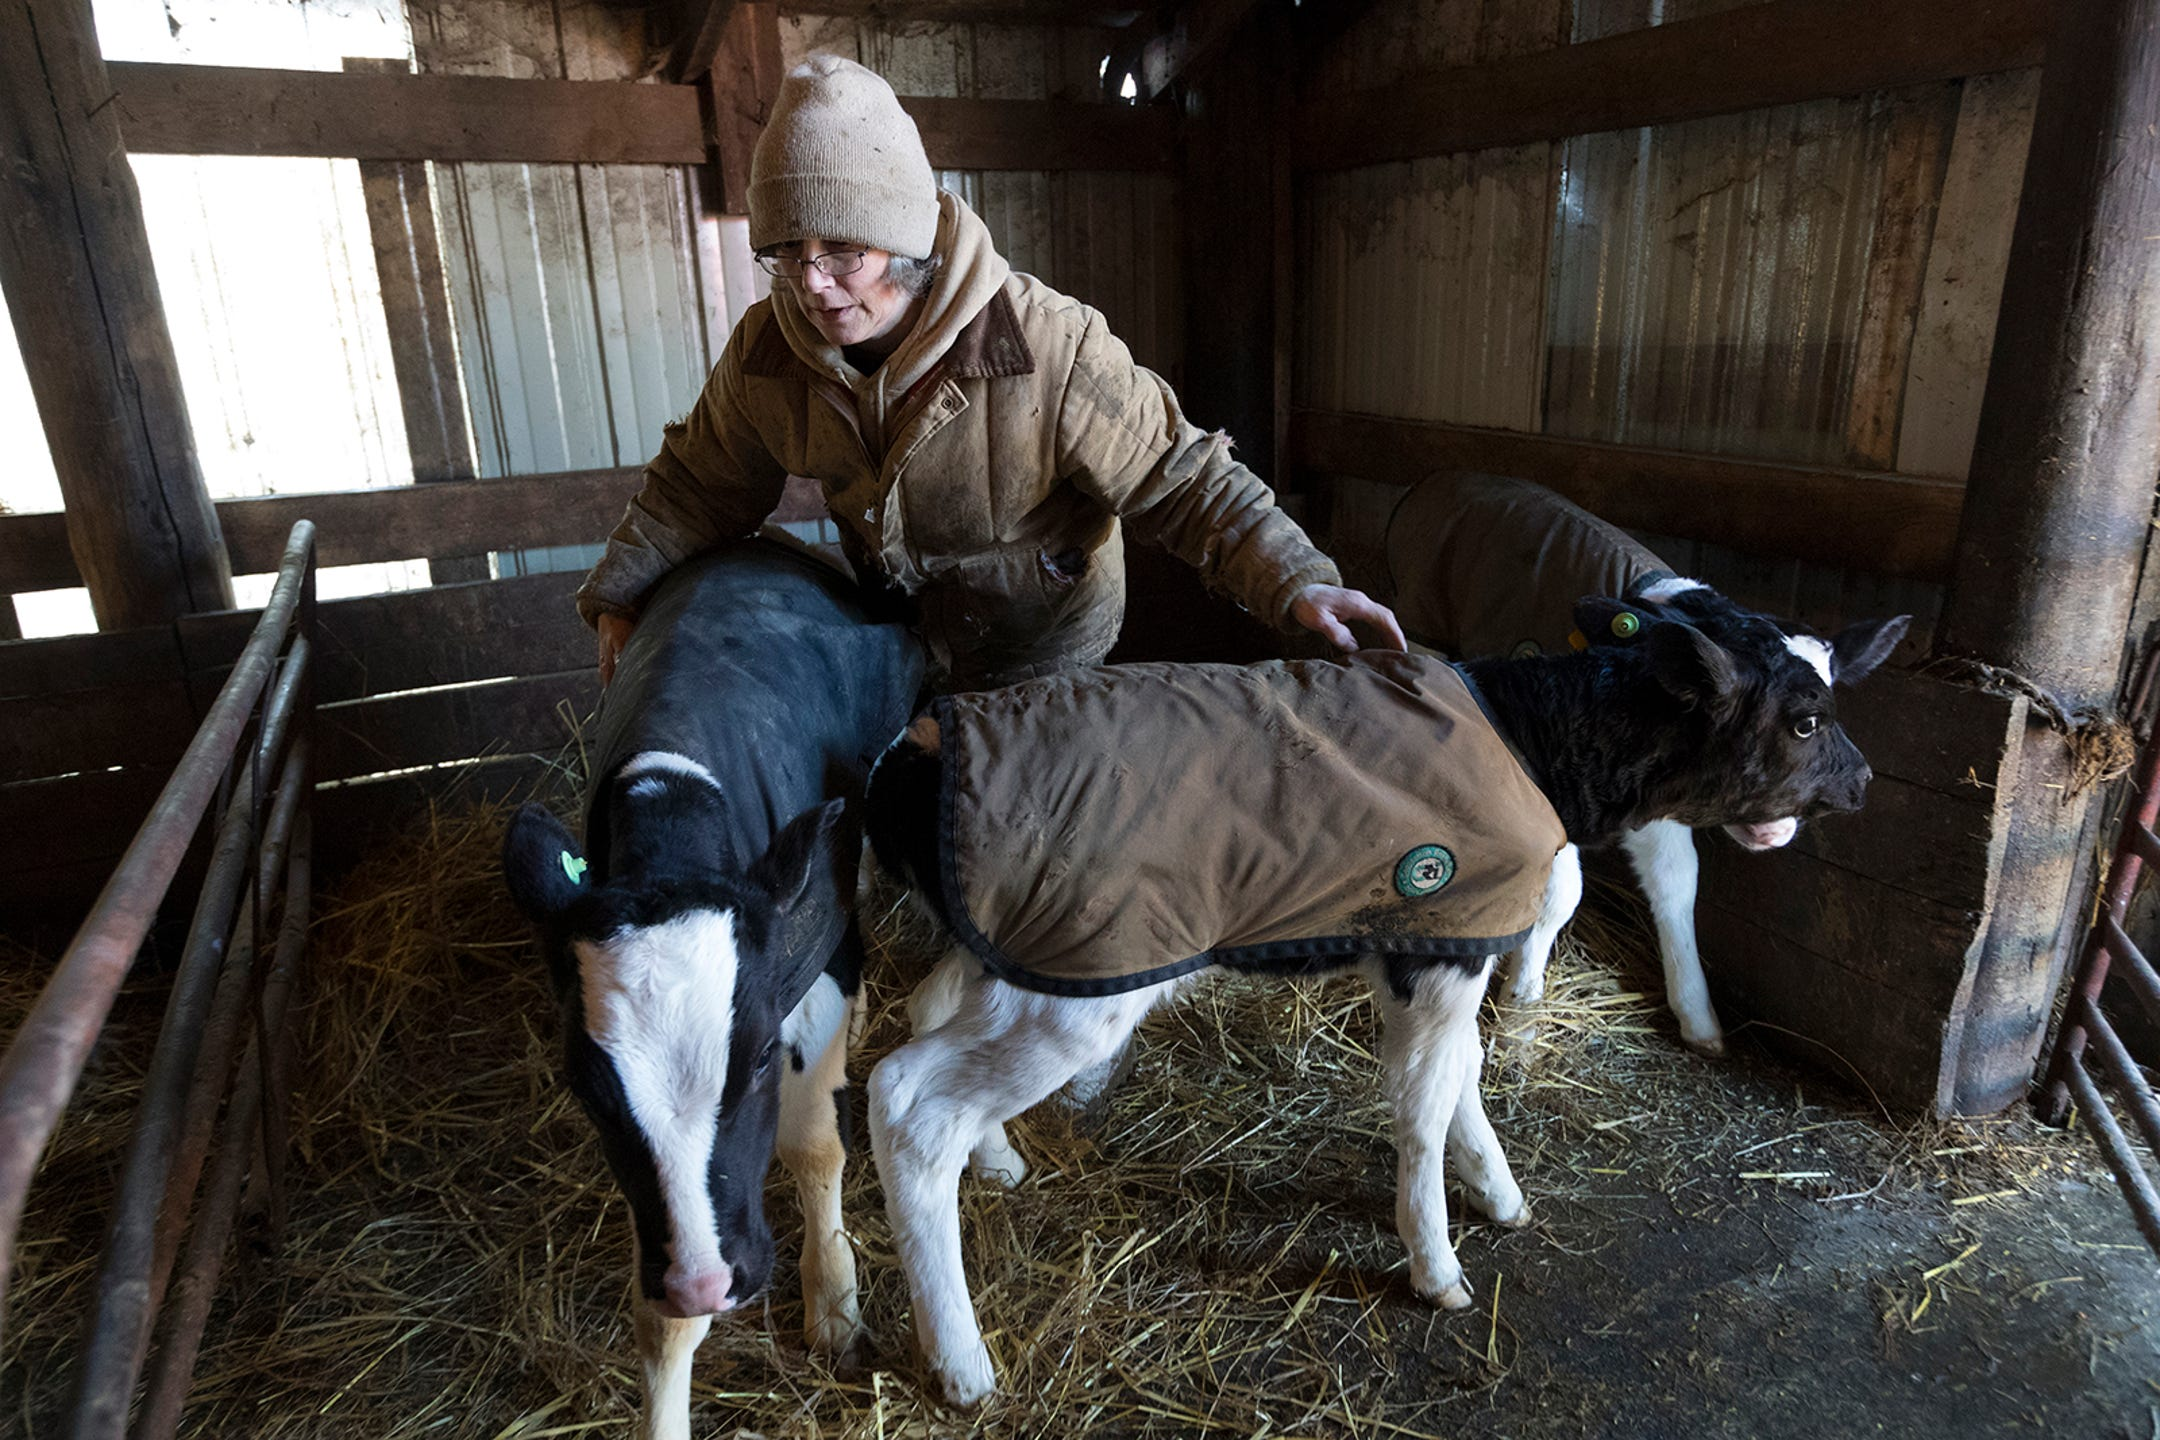 Wisconsin dairy farms are failing as milk prices fall